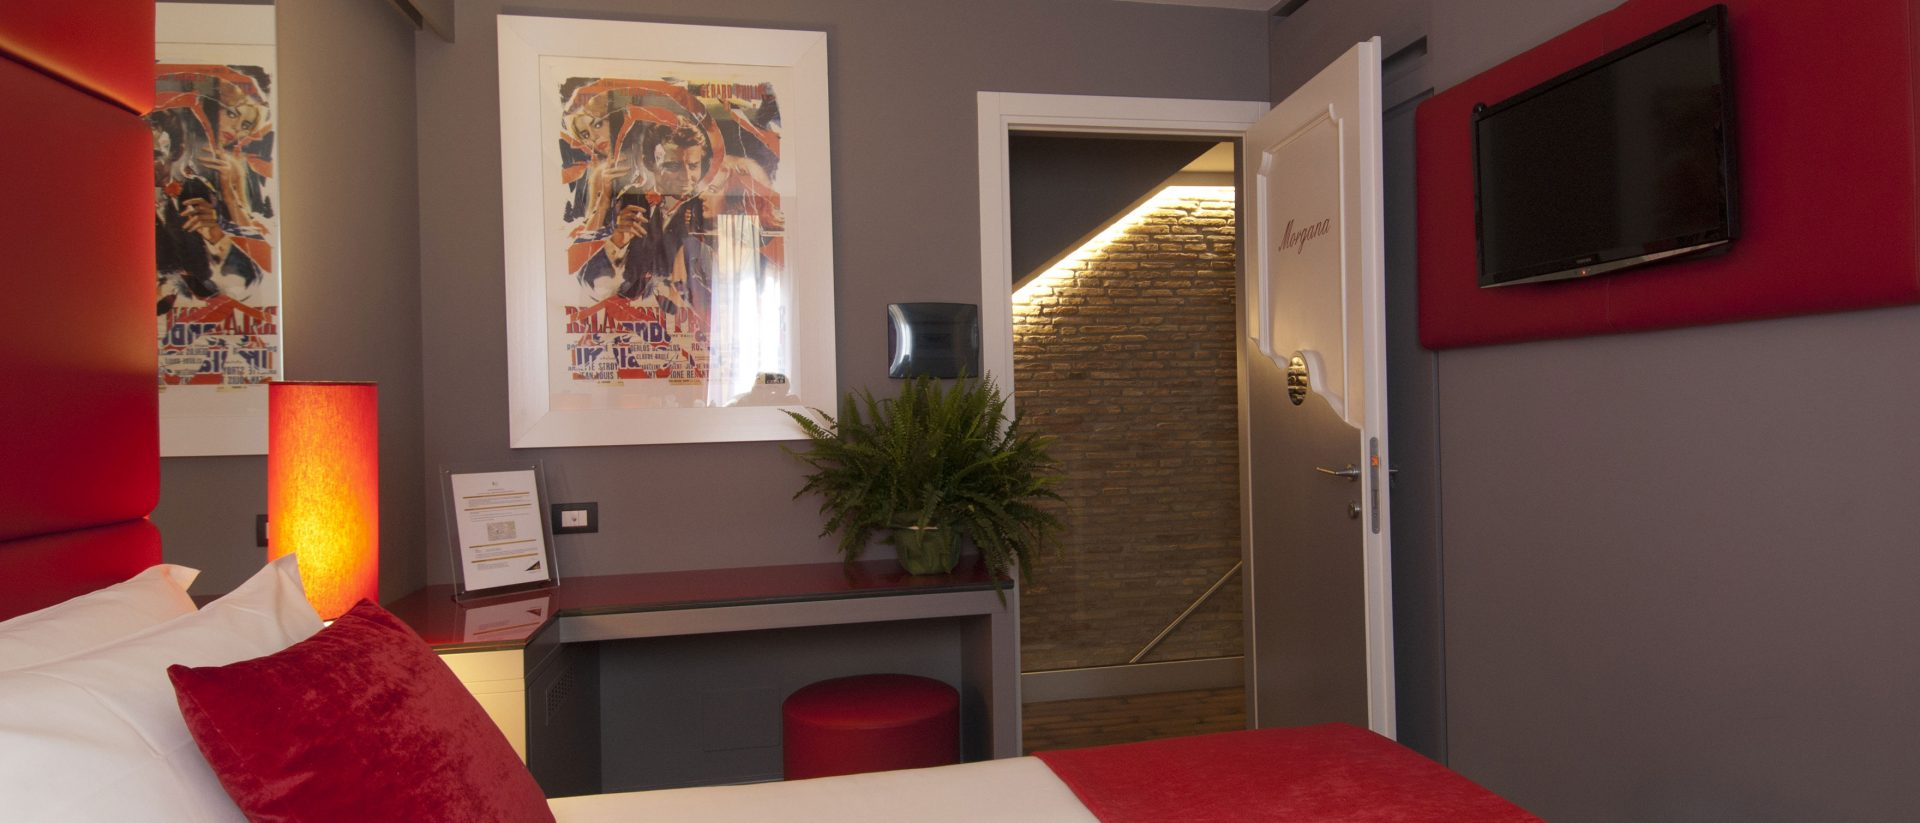 BDB Luxury Rooms Margutta | Camere di lusso a Roma centro in Via Margutta